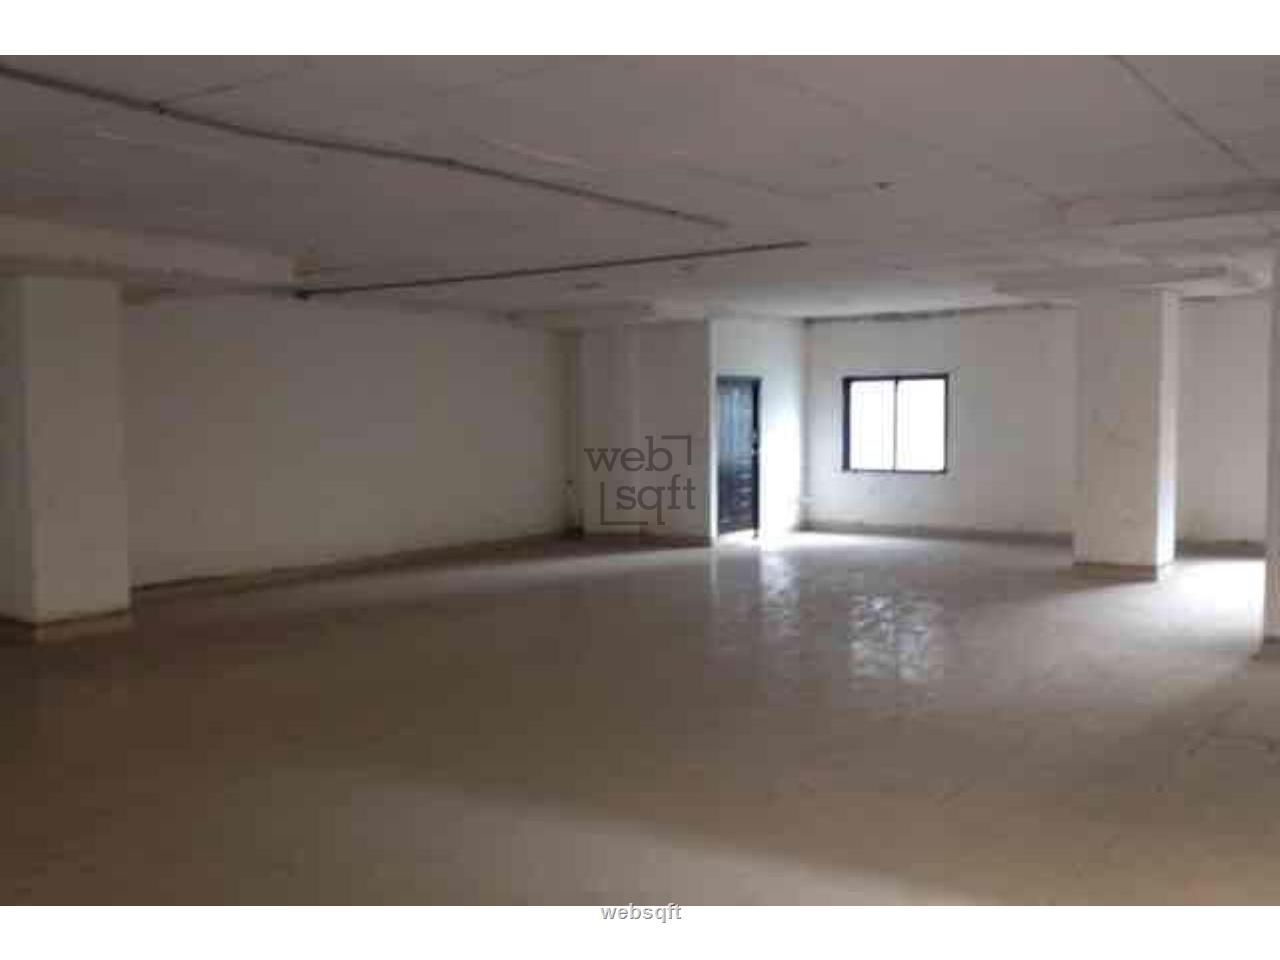 Websqft - Commercial Office Space - Property for Sale - in 2045Sq-ft/Gachibowli at Rs 17178000